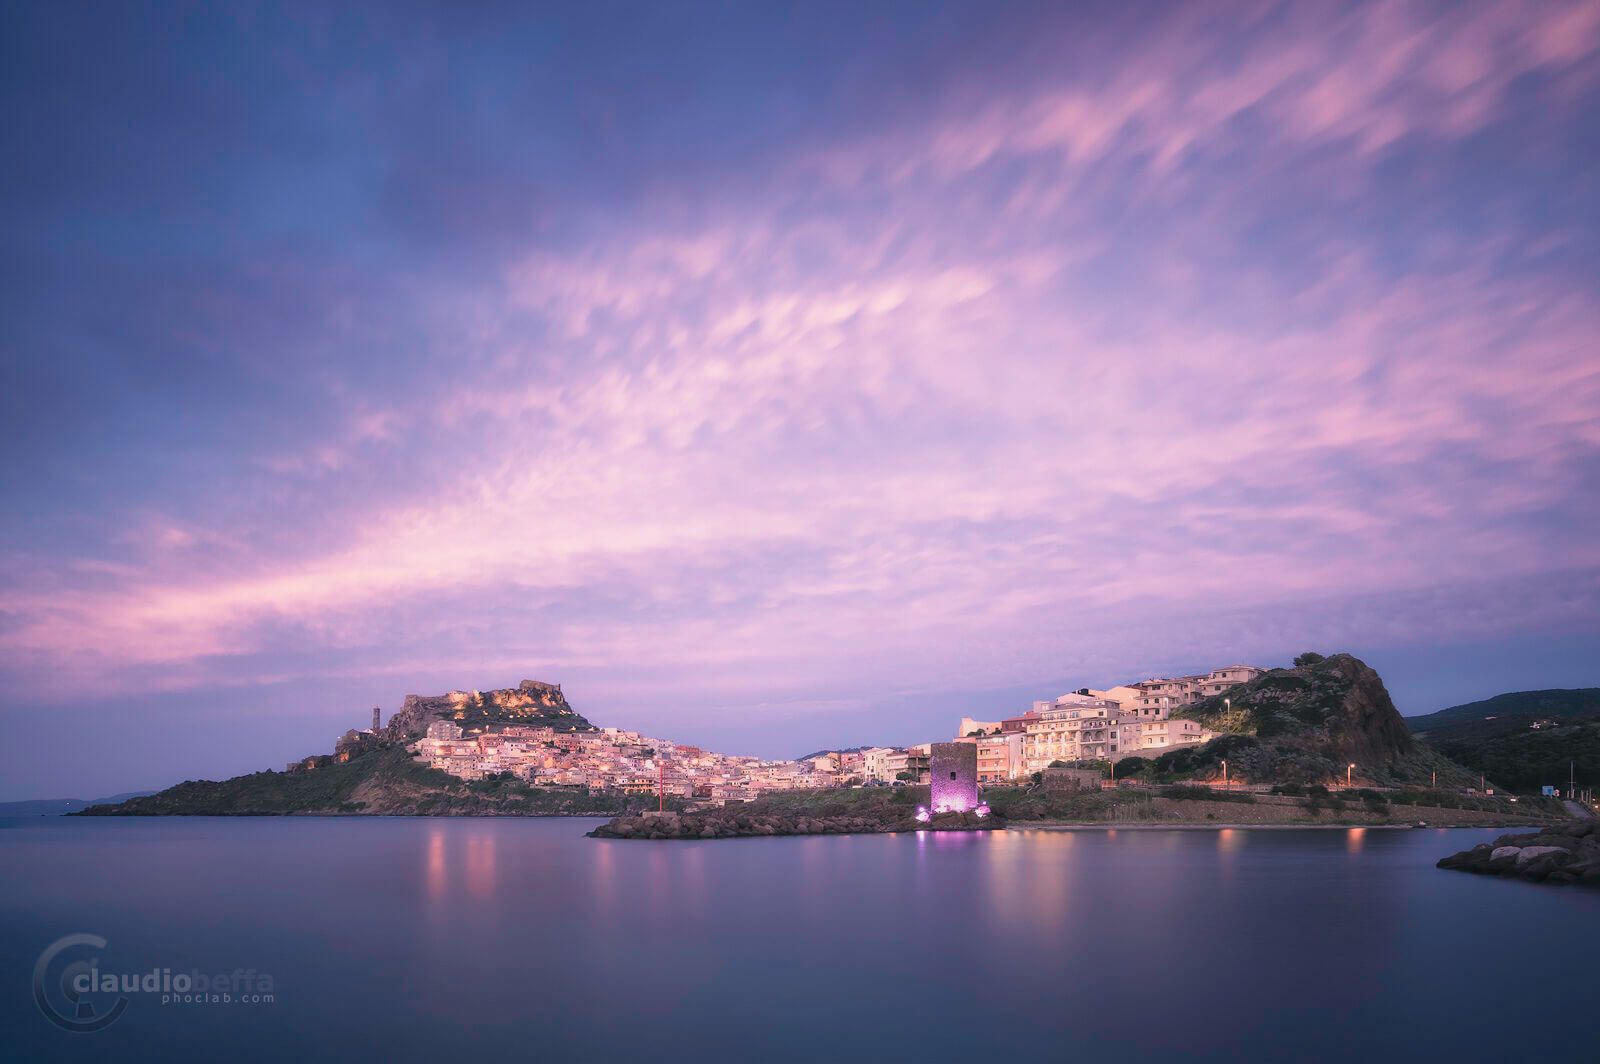 Castelsardo, Sardinia, Italy, Landscape, Seascape, Sunset, Blue hour, Town, Sea, Sky, Clouds